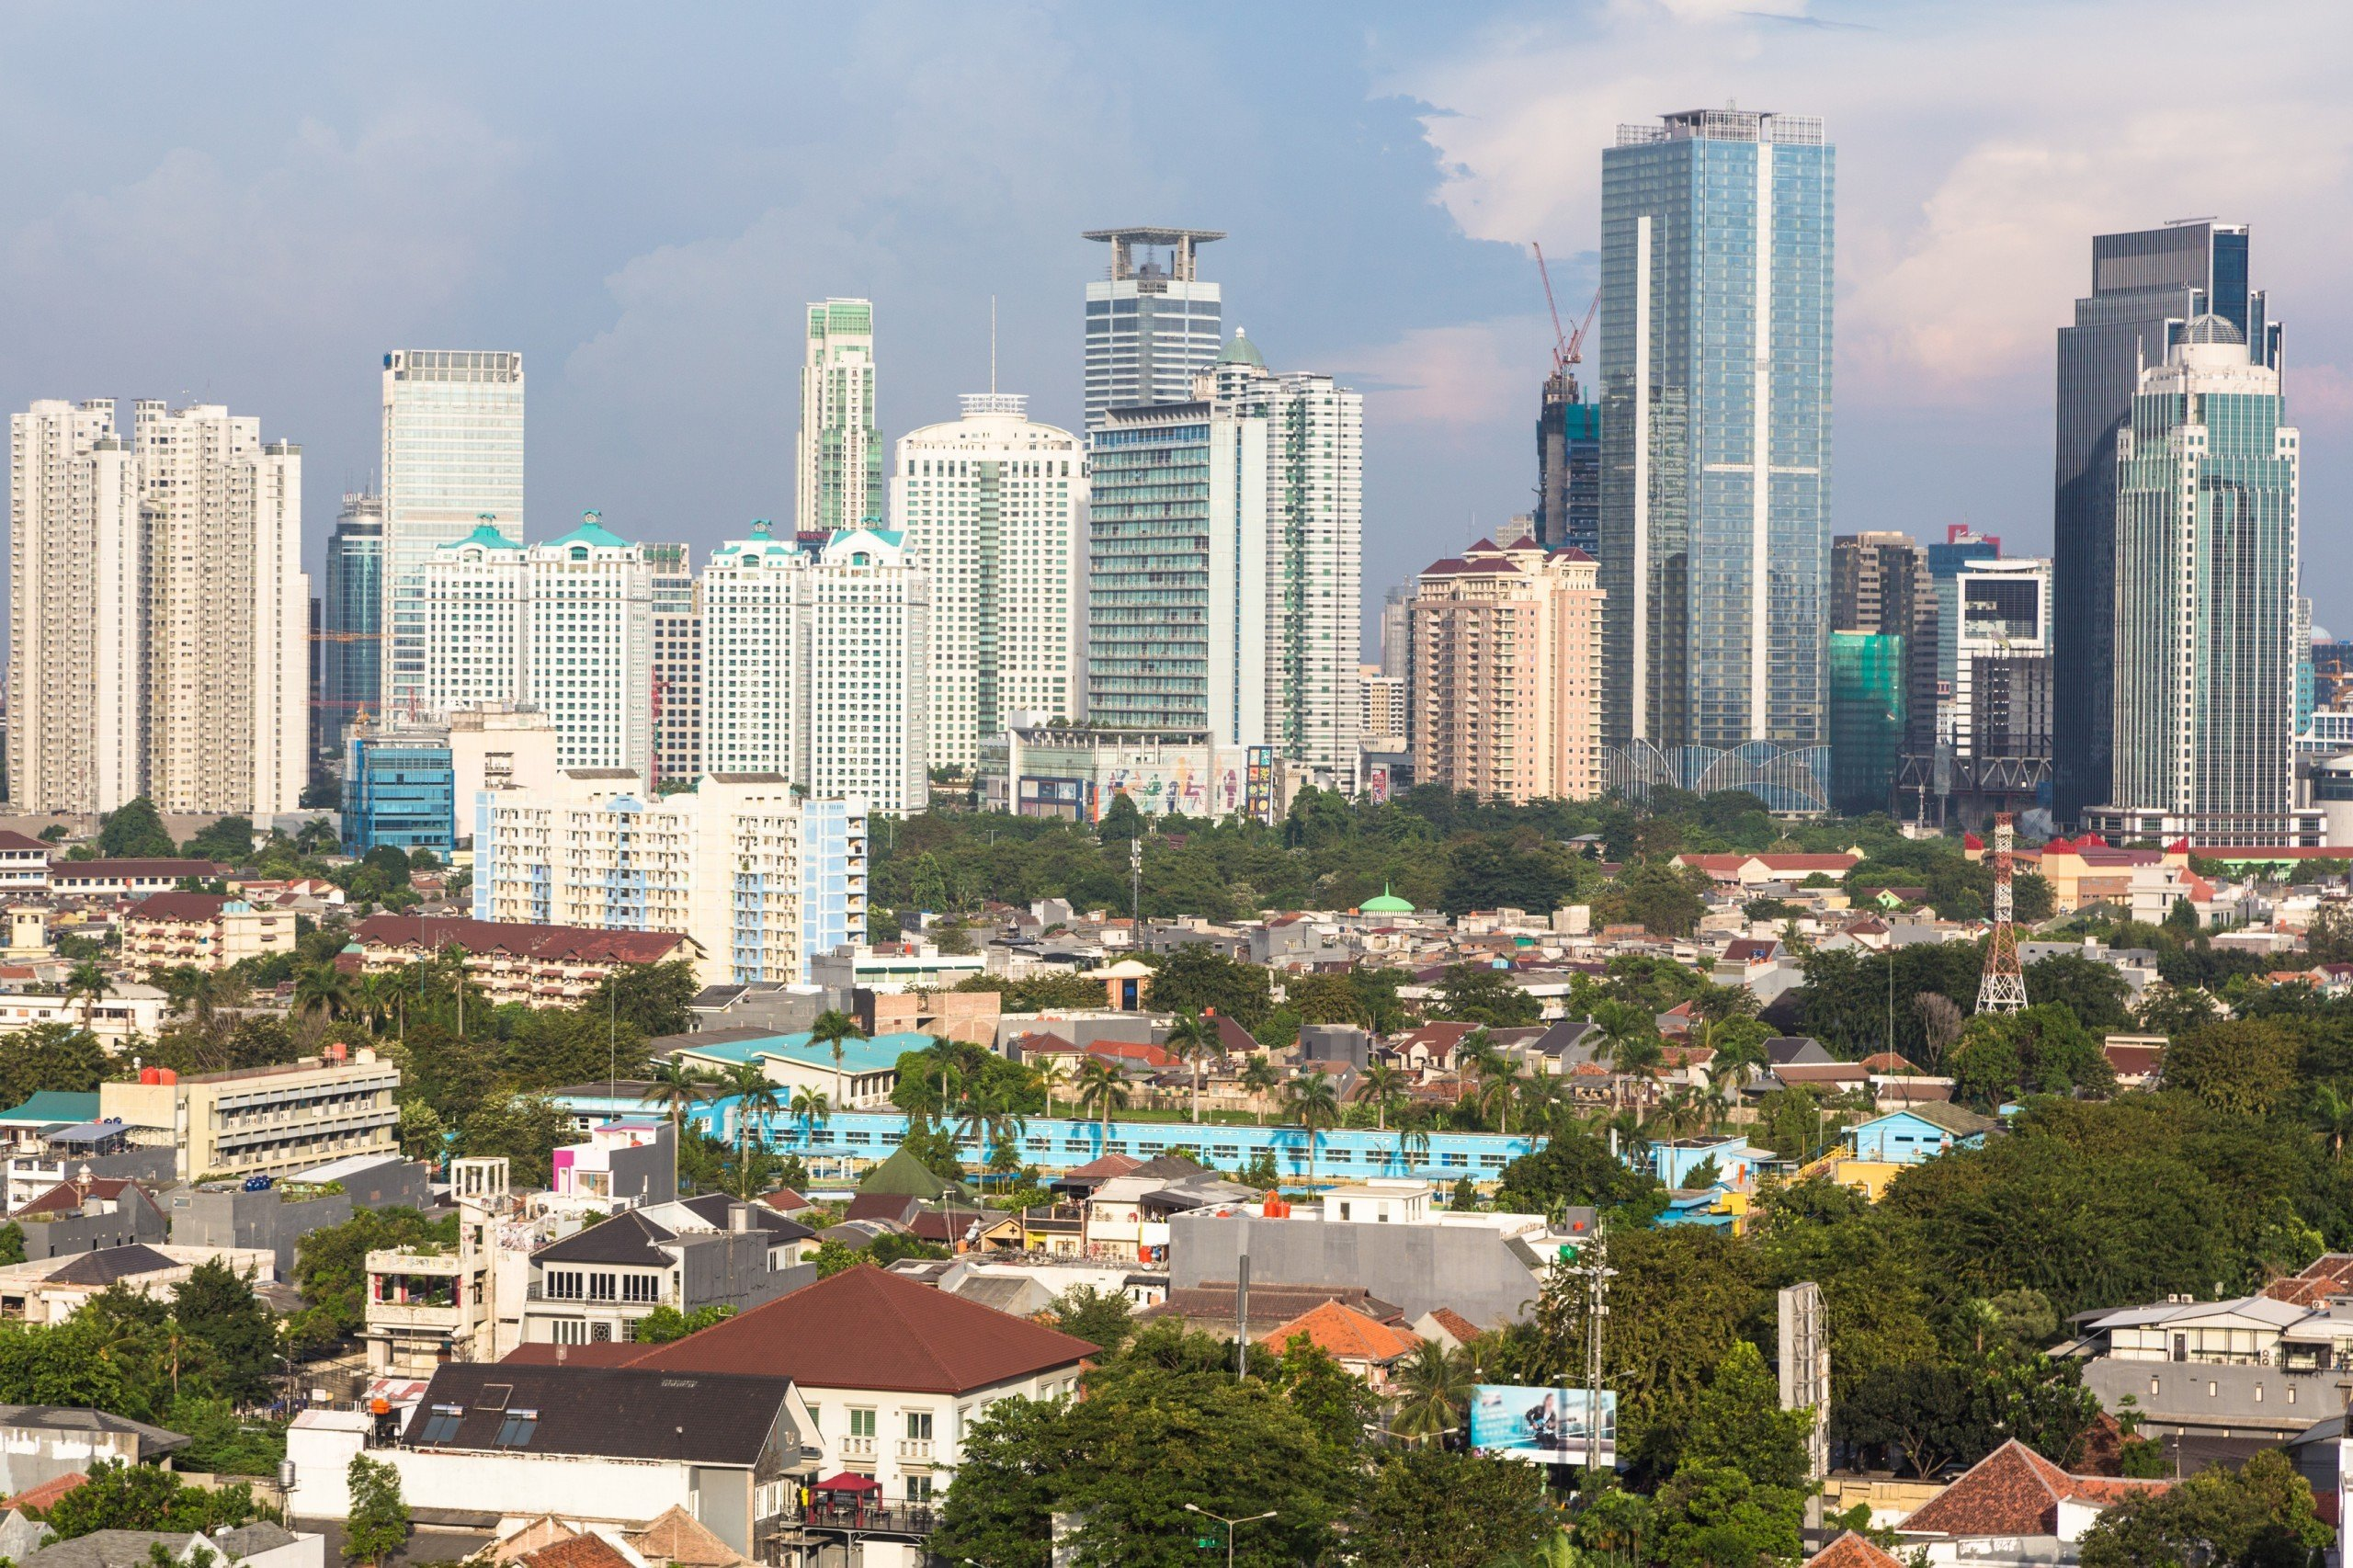 Jakarta, Indonesia capital city, modern buildings with villages like housing structure right in the centre of the city